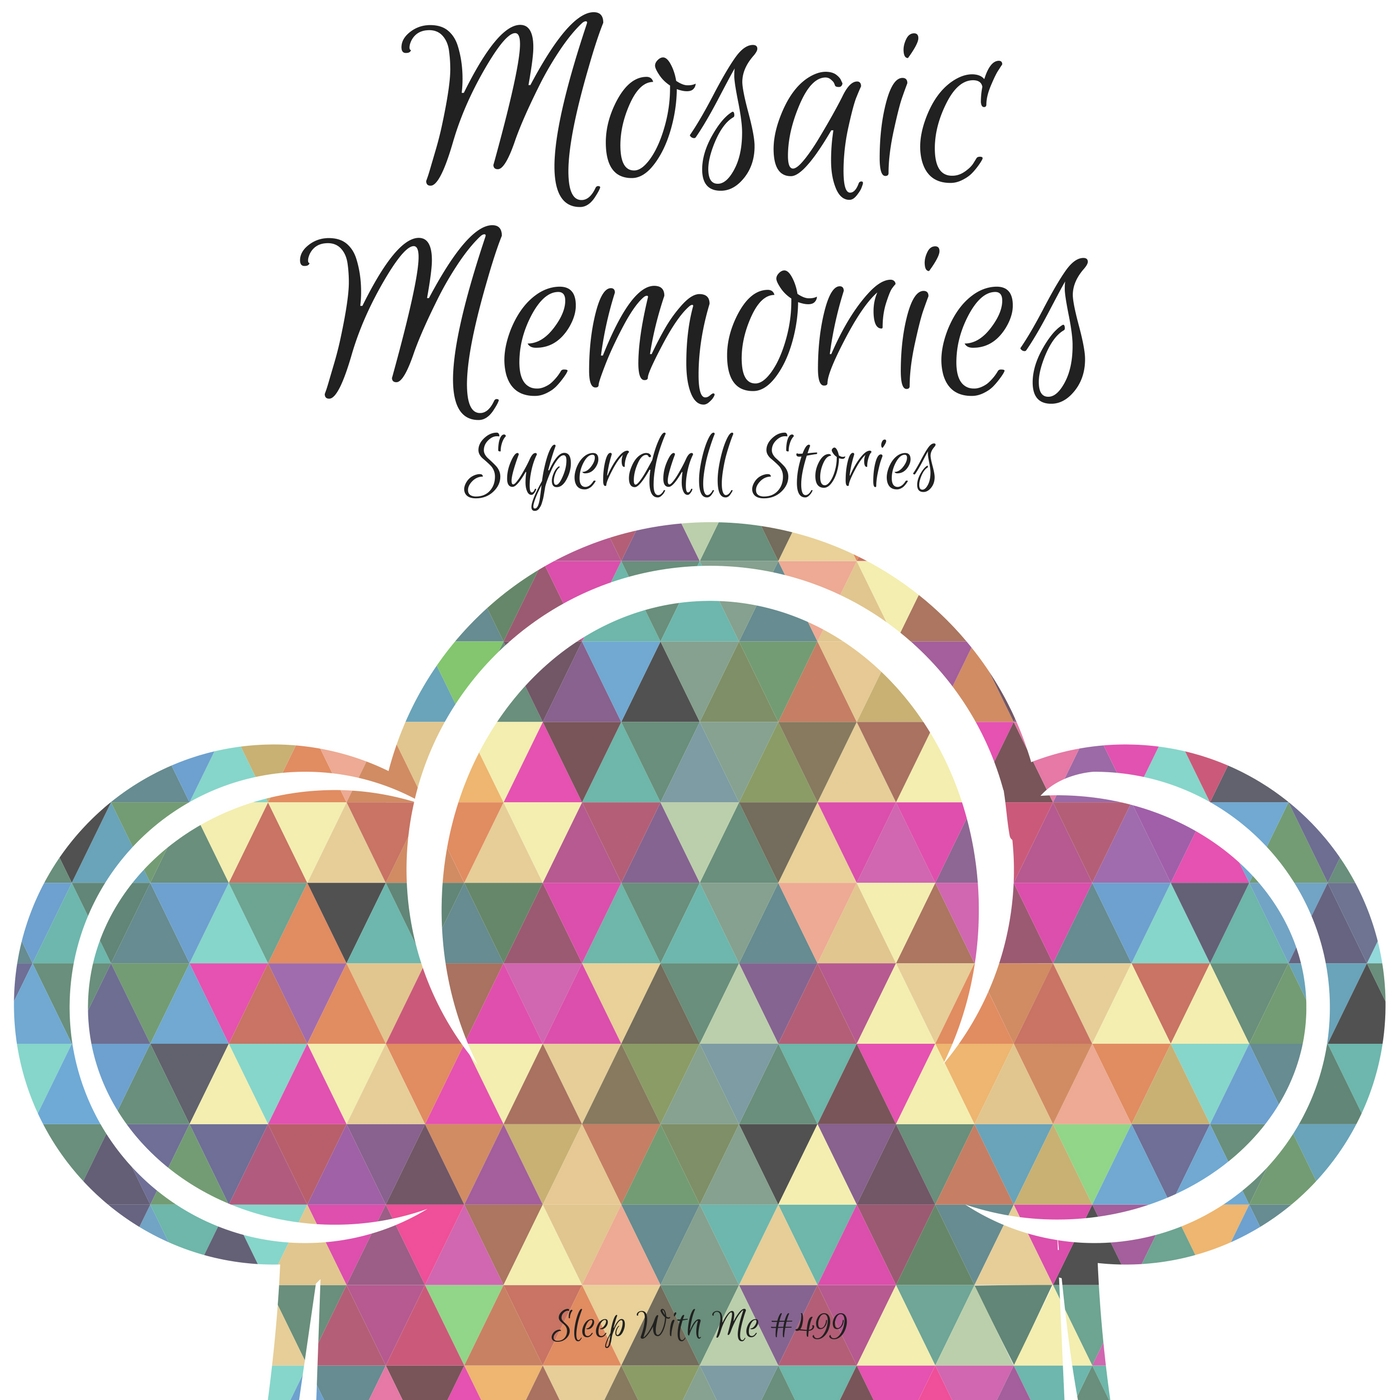 #499 Mosaic Memories | Supedull Stories